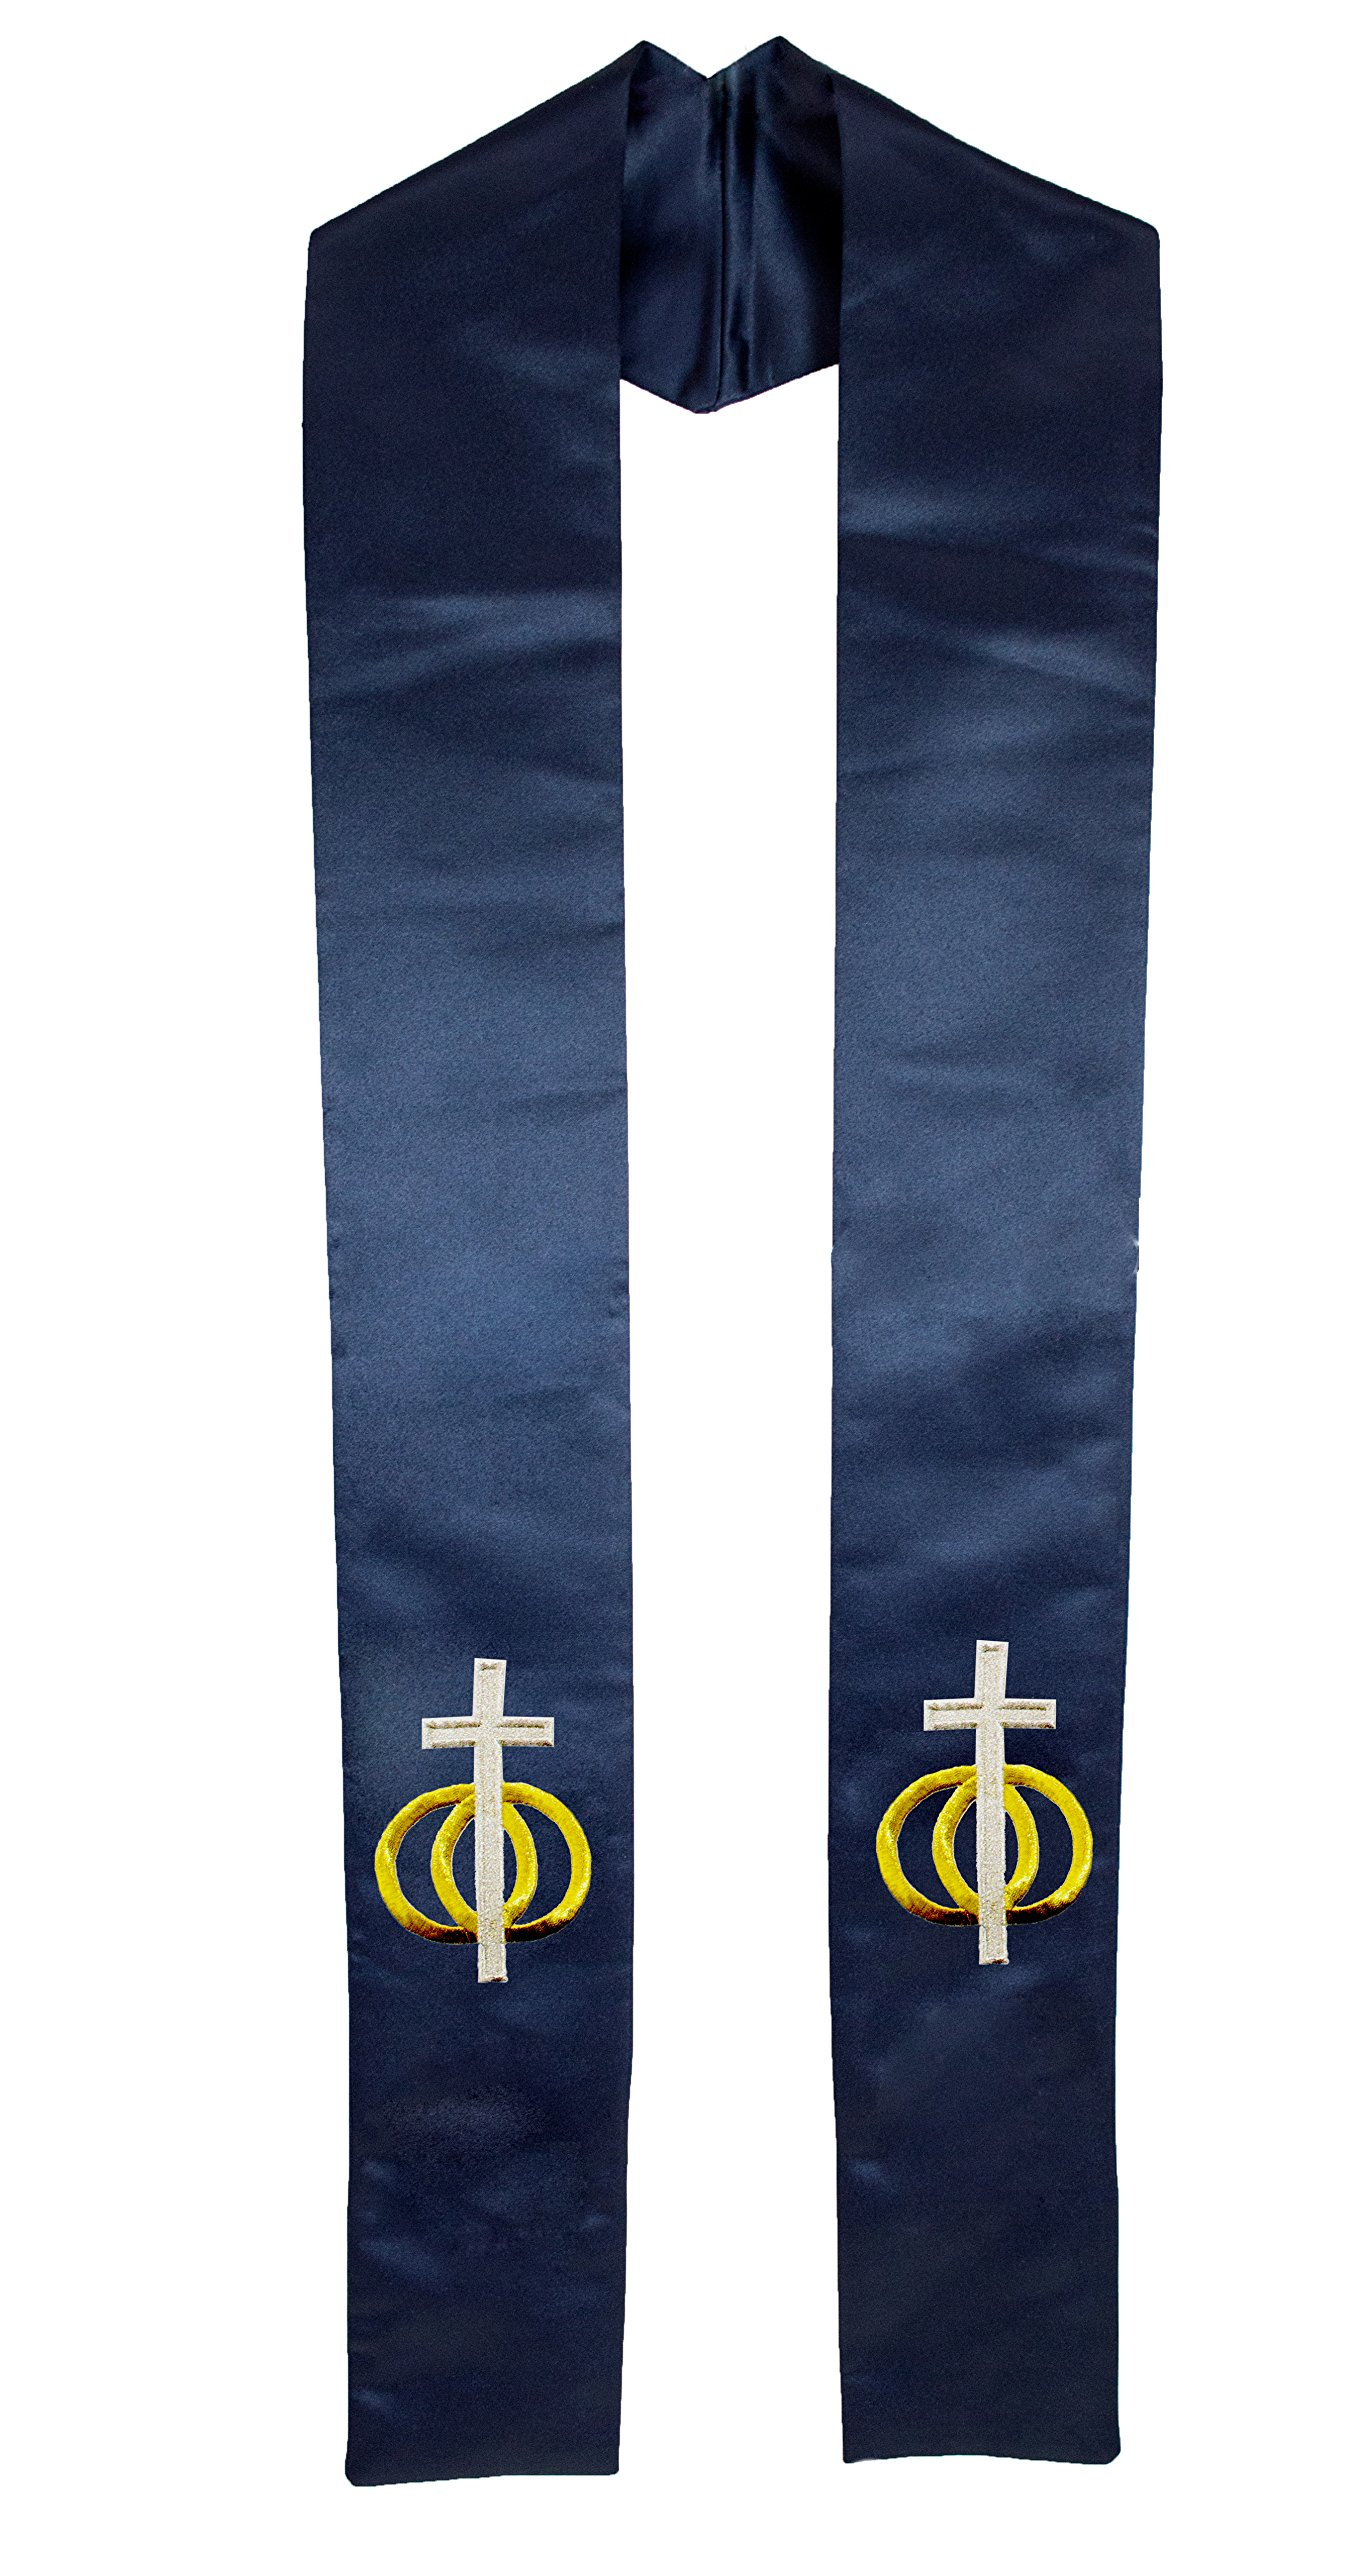 Deluxe Blue Satin Clergy Stole with Embroidered Wedding Rings Unity Cross